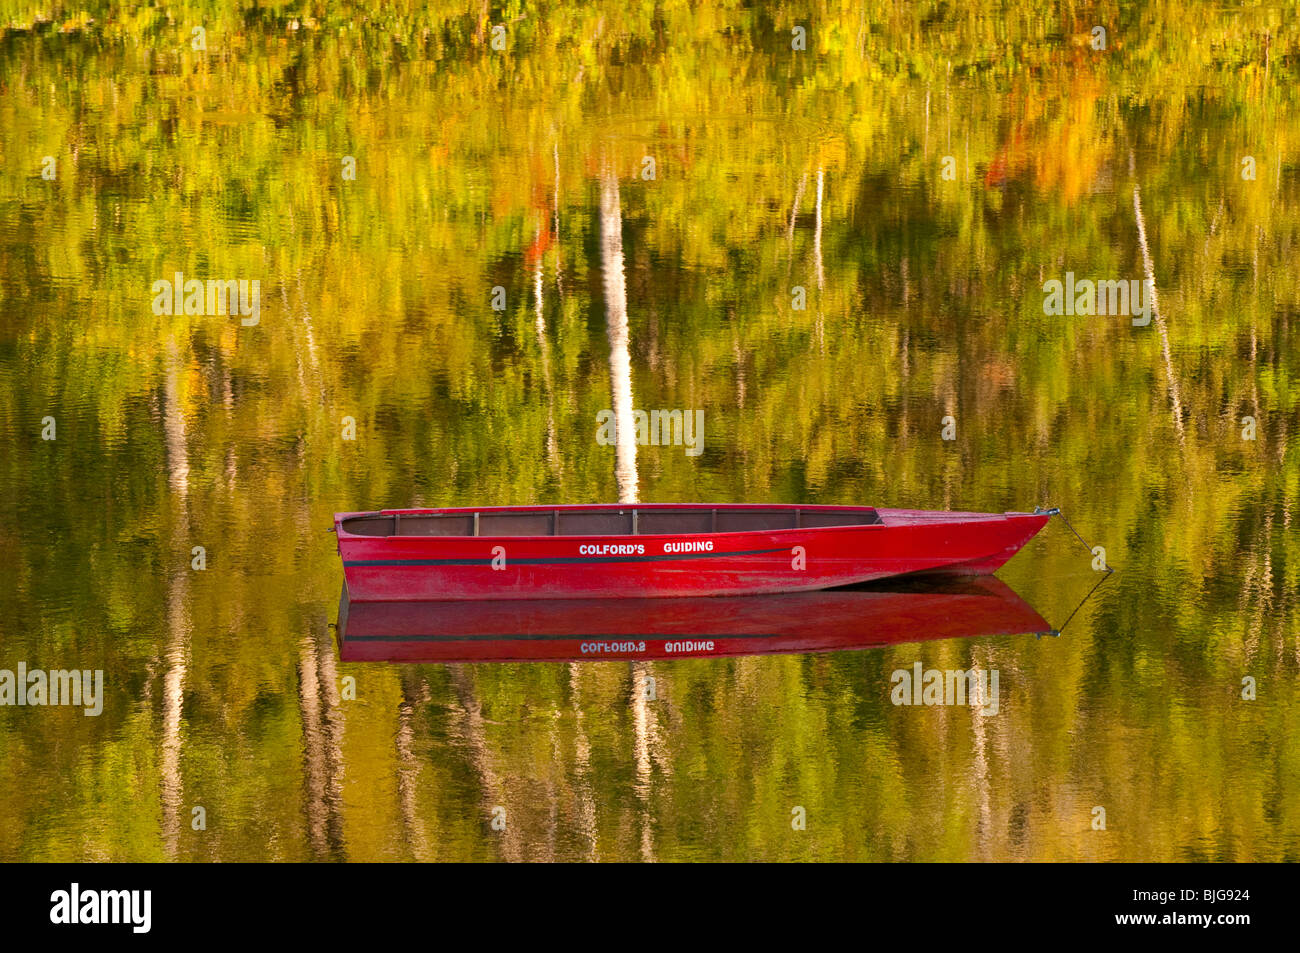 NEW BRUNSWICK, GUIDED FLY FISHING BOATS AND CANOES ANCHORED ON THE MIRAMICHI RIVER. Atlantic Salmon. - Stock Image